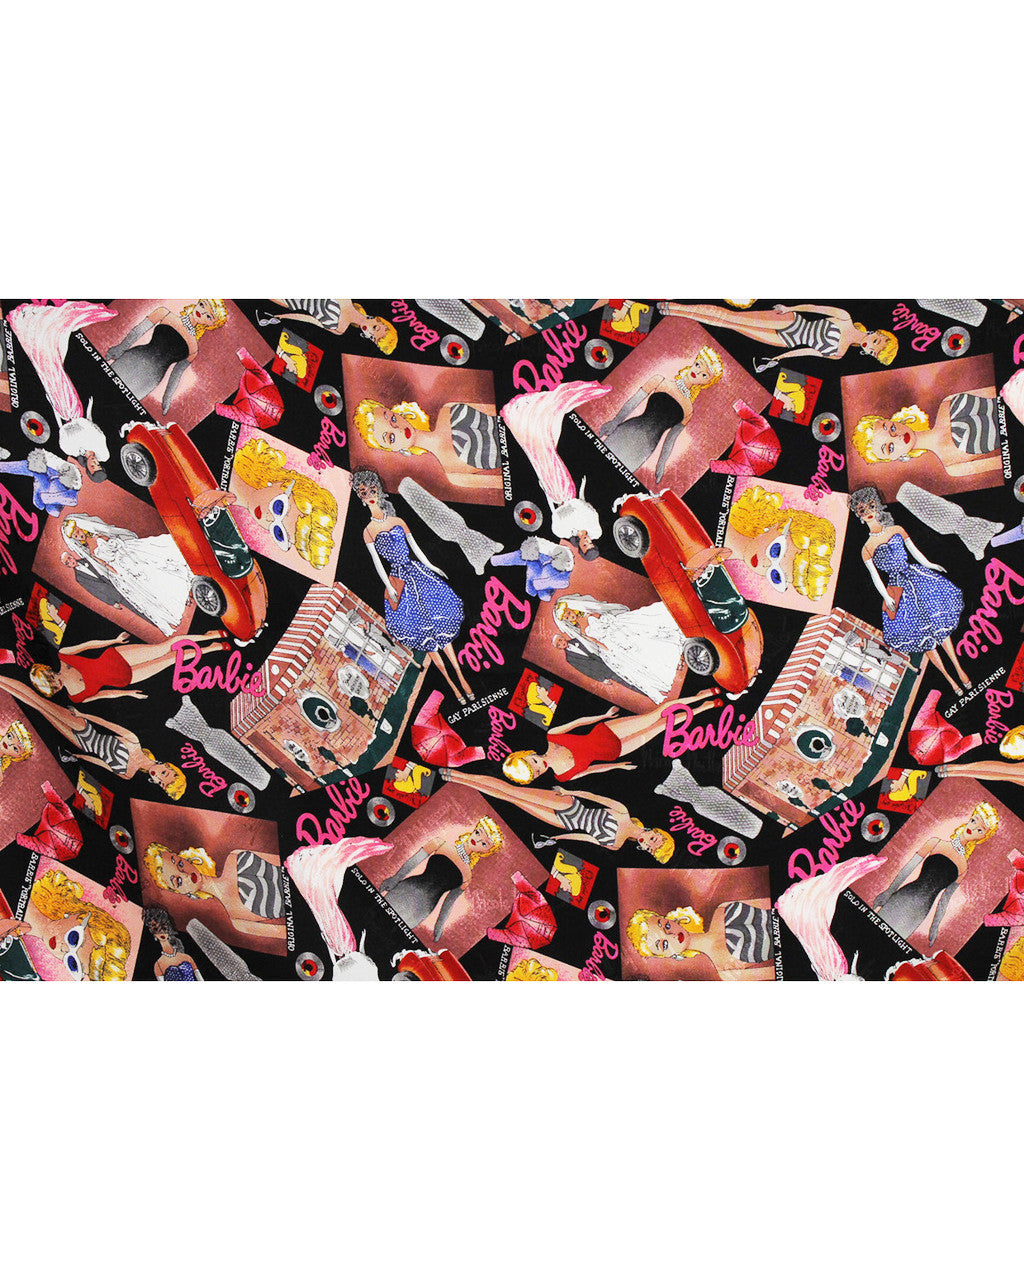 Nicole Miller Barbie Doll Silk Scarf